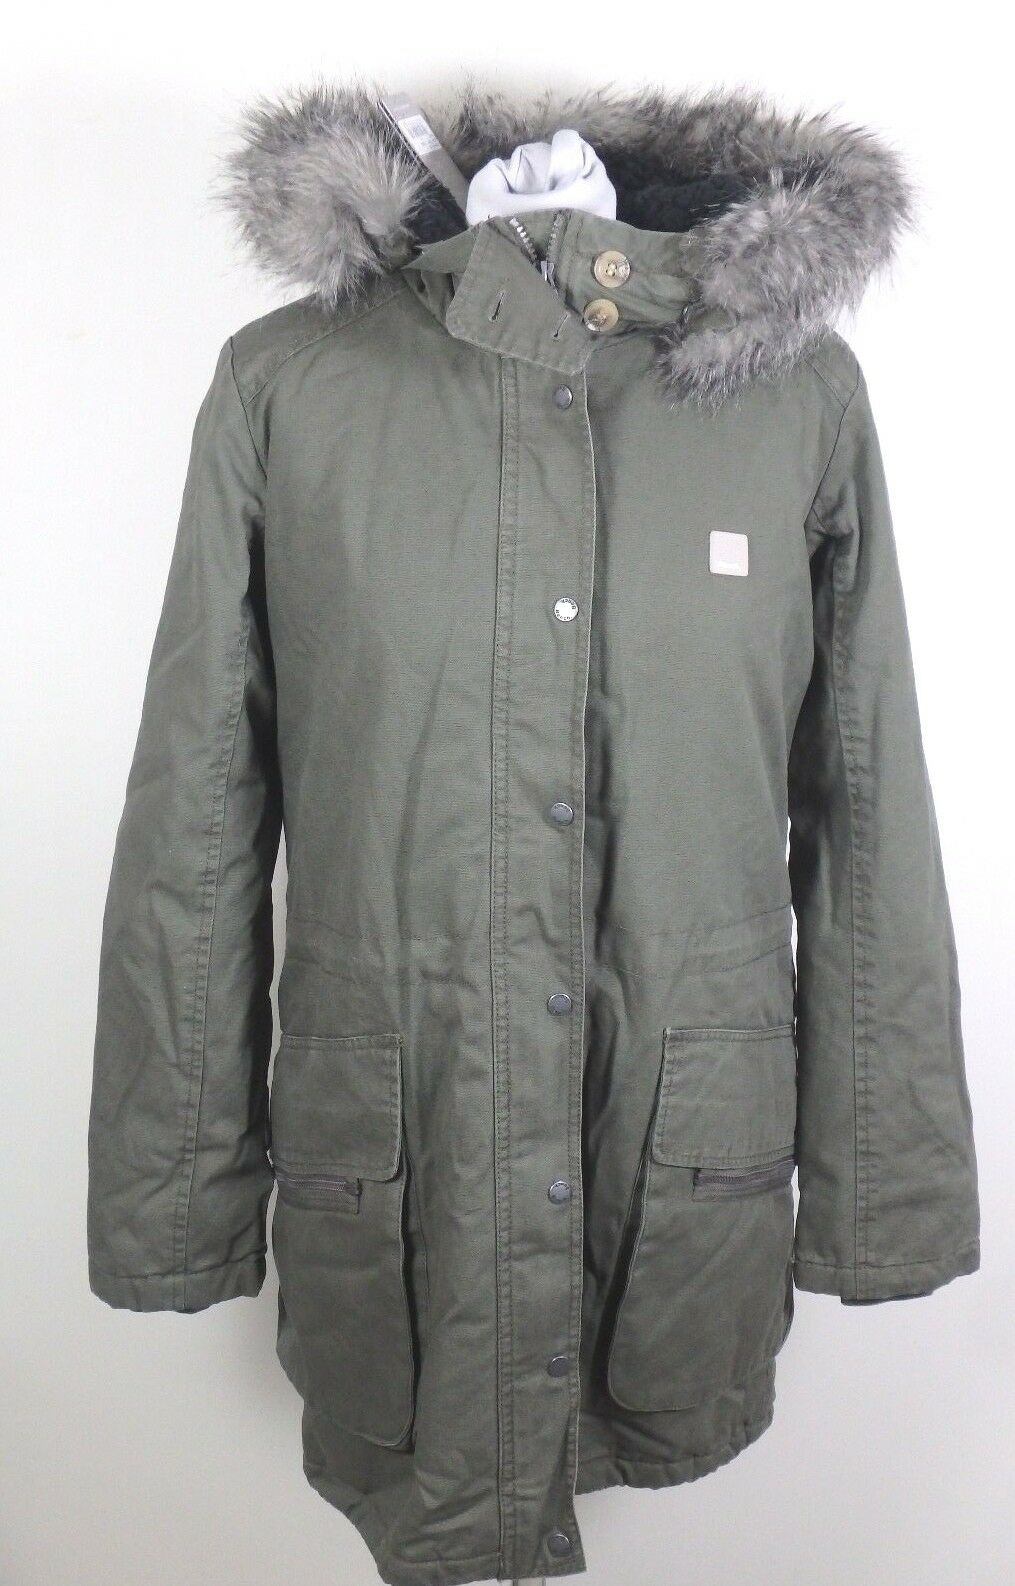 9750b50c74bf22 Bench 27972 Wolfish B Jacke Parka Winterjacke Mantel Winter Damen Gr. M Oliv